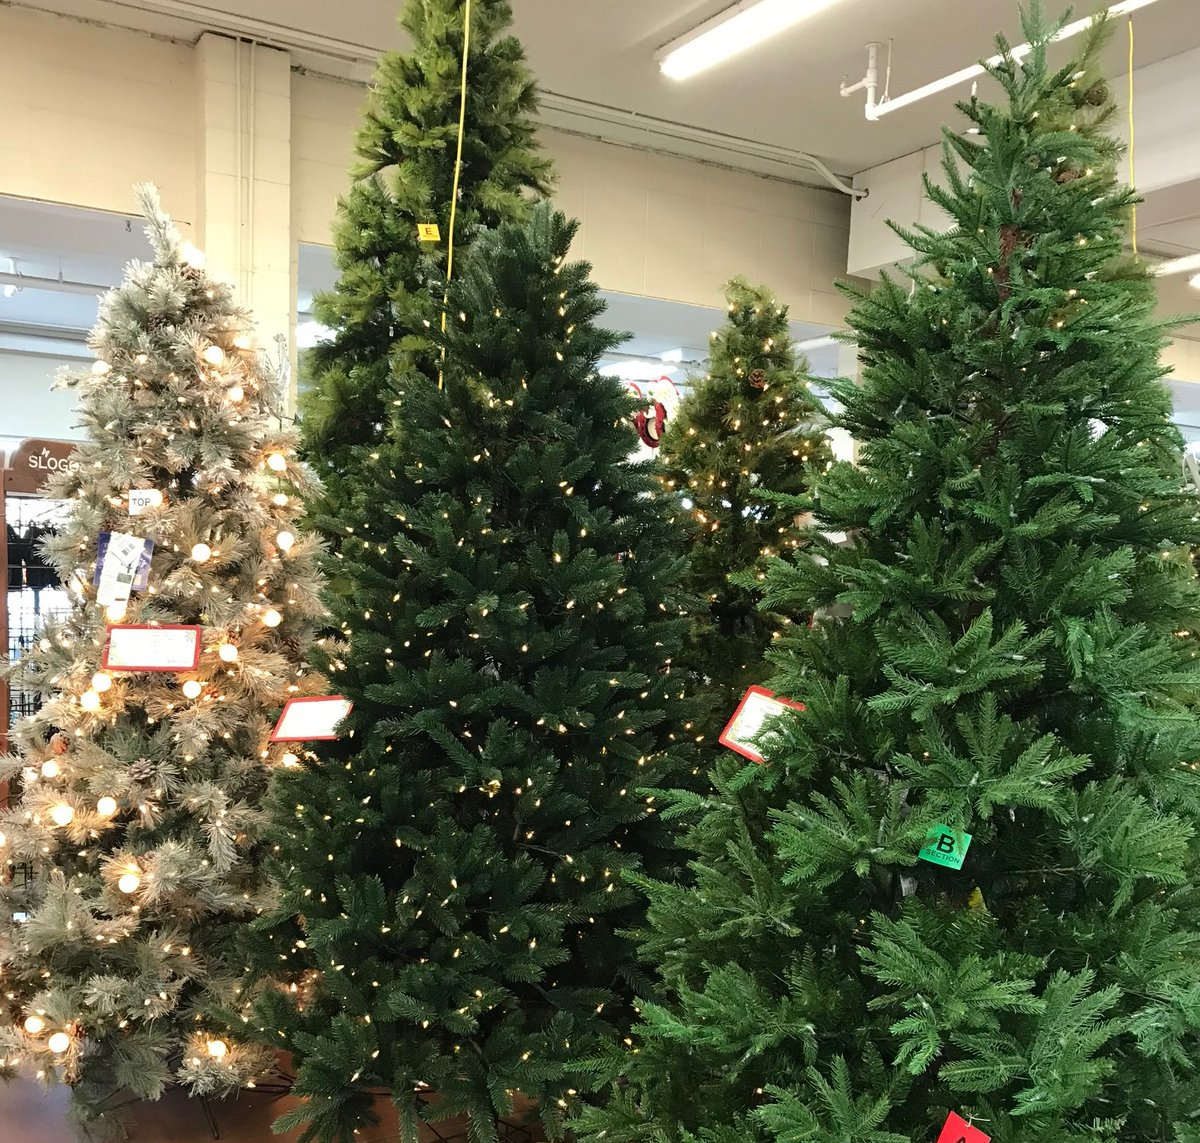 Gardenhelp Greengate Ca On Twitter Our Artificial Everlasting Trees Look Sooo Real They Are Flame Retardant Have Branches Hinged For Fold Away Storage Can Be Stored With Lights Attached Storage Box Included Want Pre Lit